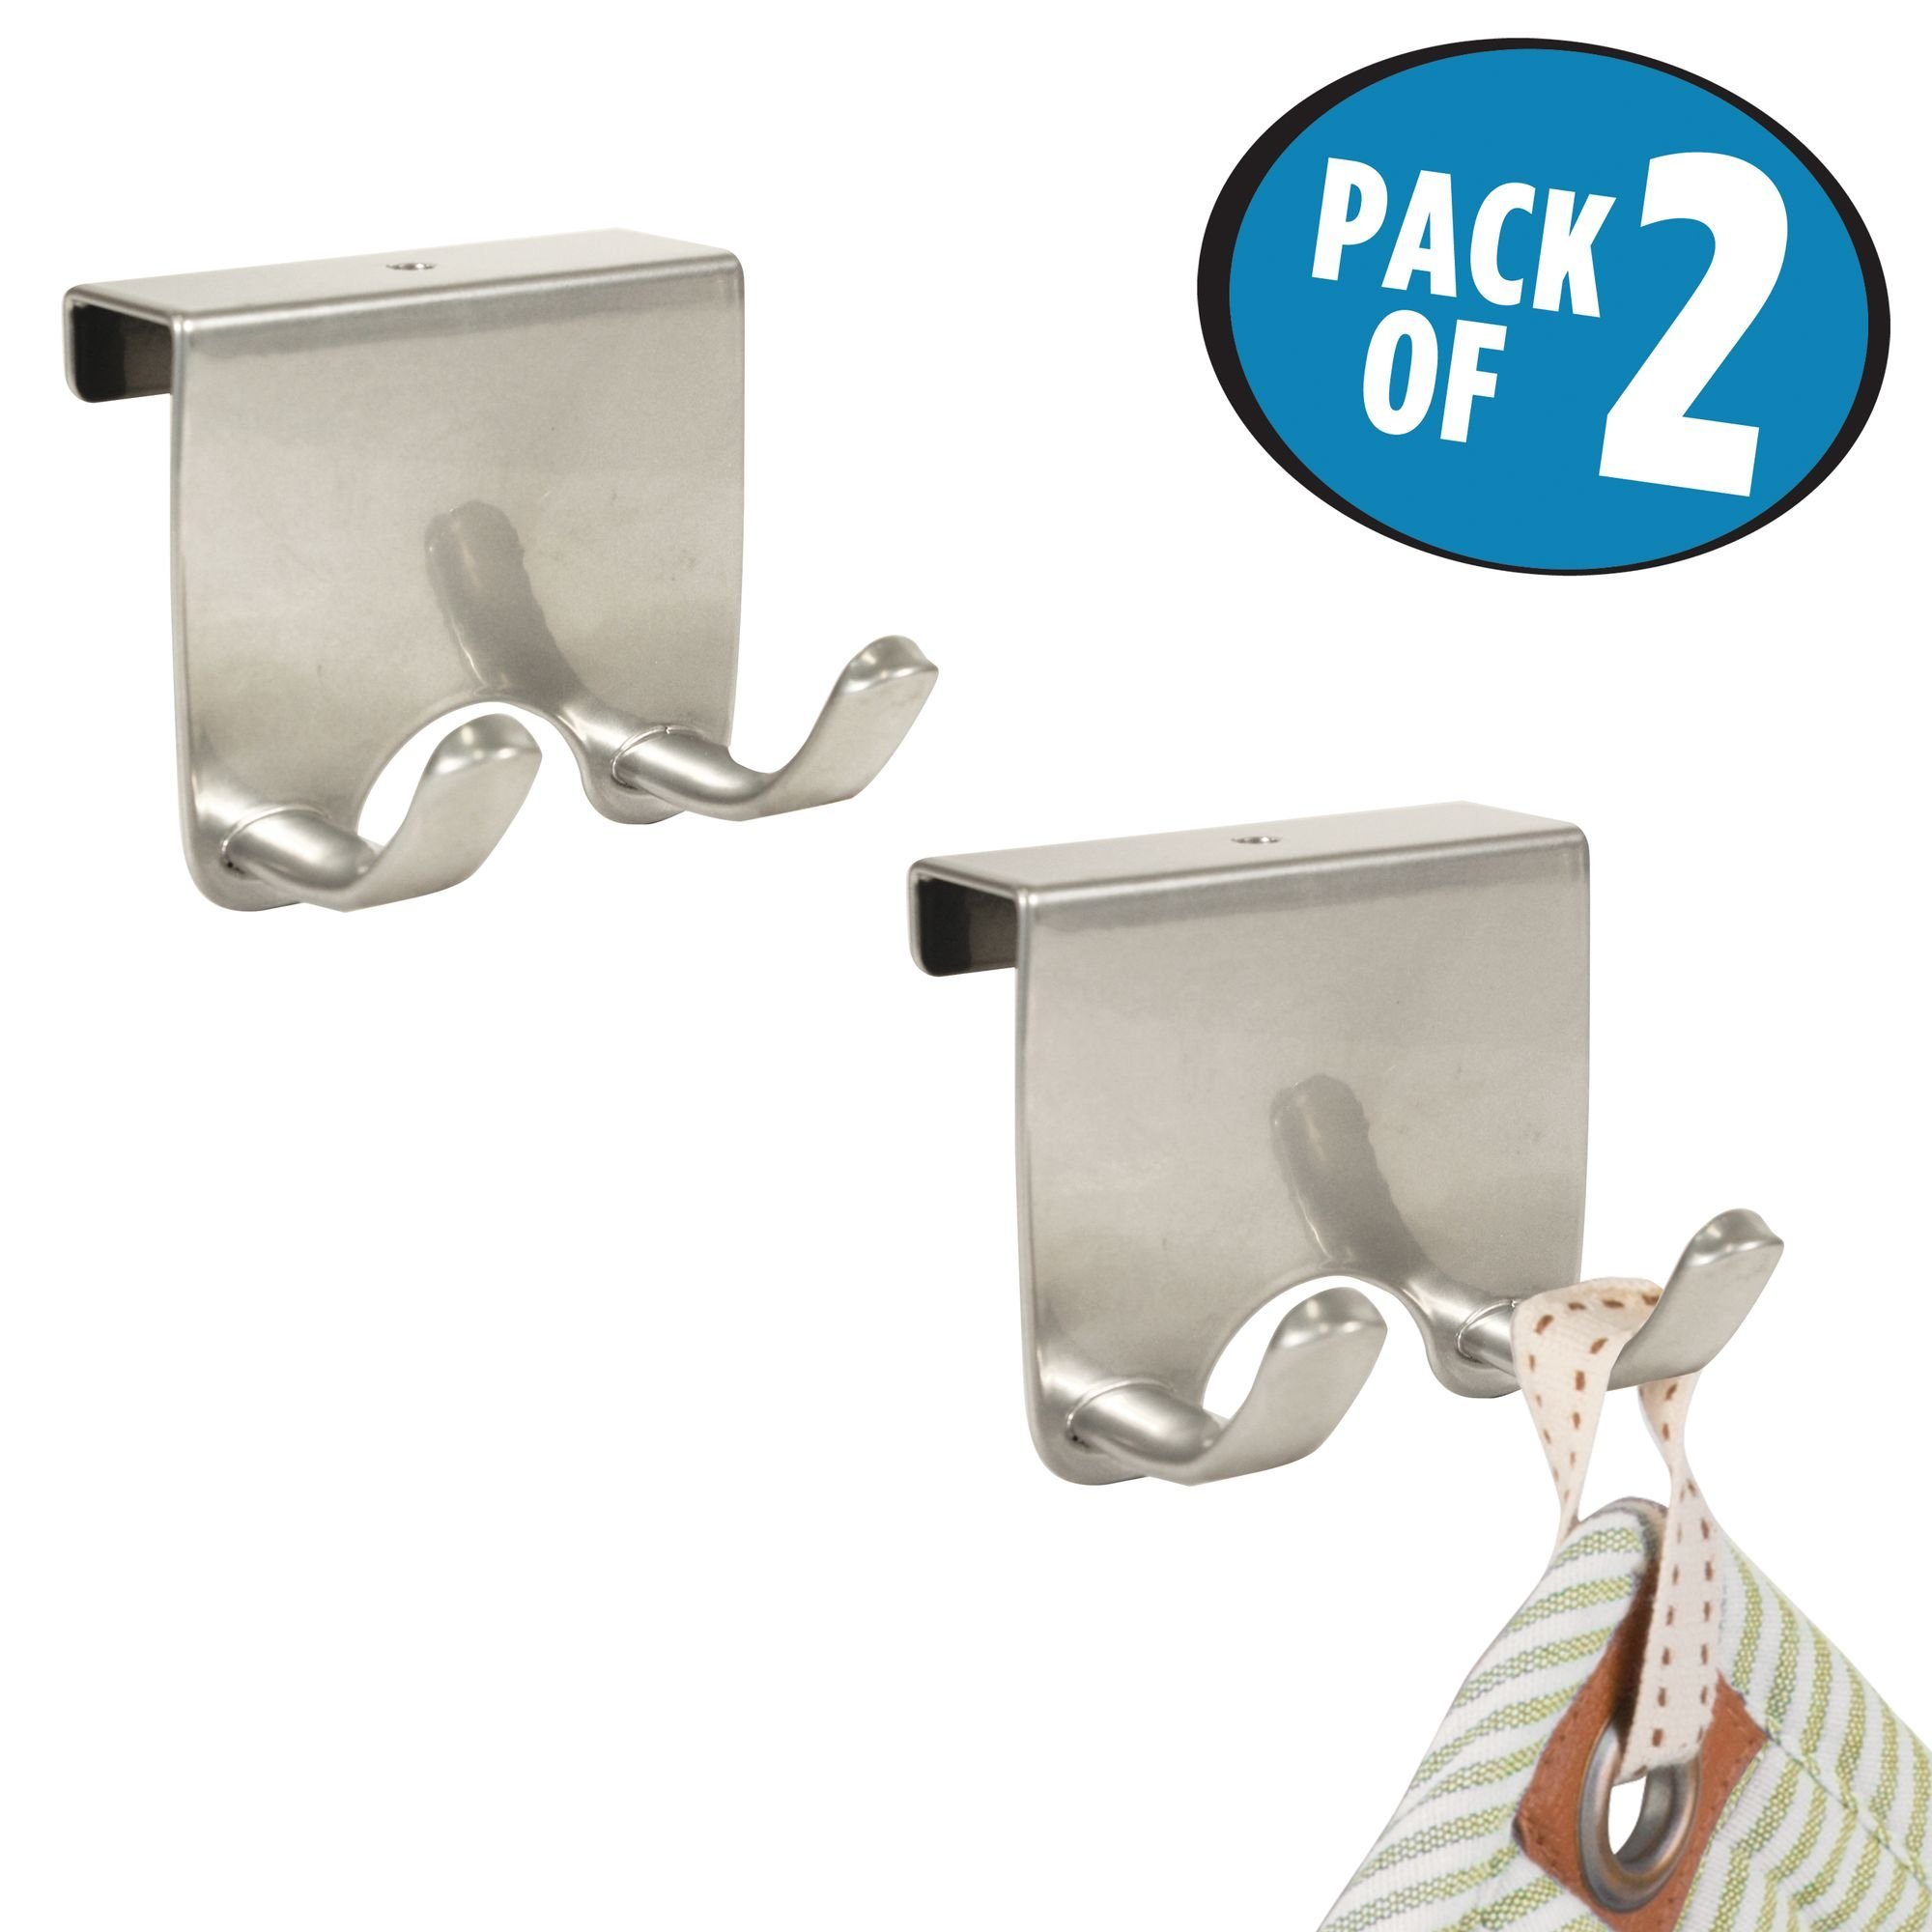 mDesign Over-the-Cabinet Kitchen Storage Hooks for Dish Towels or Pot Holders - Pack of 2, Silver